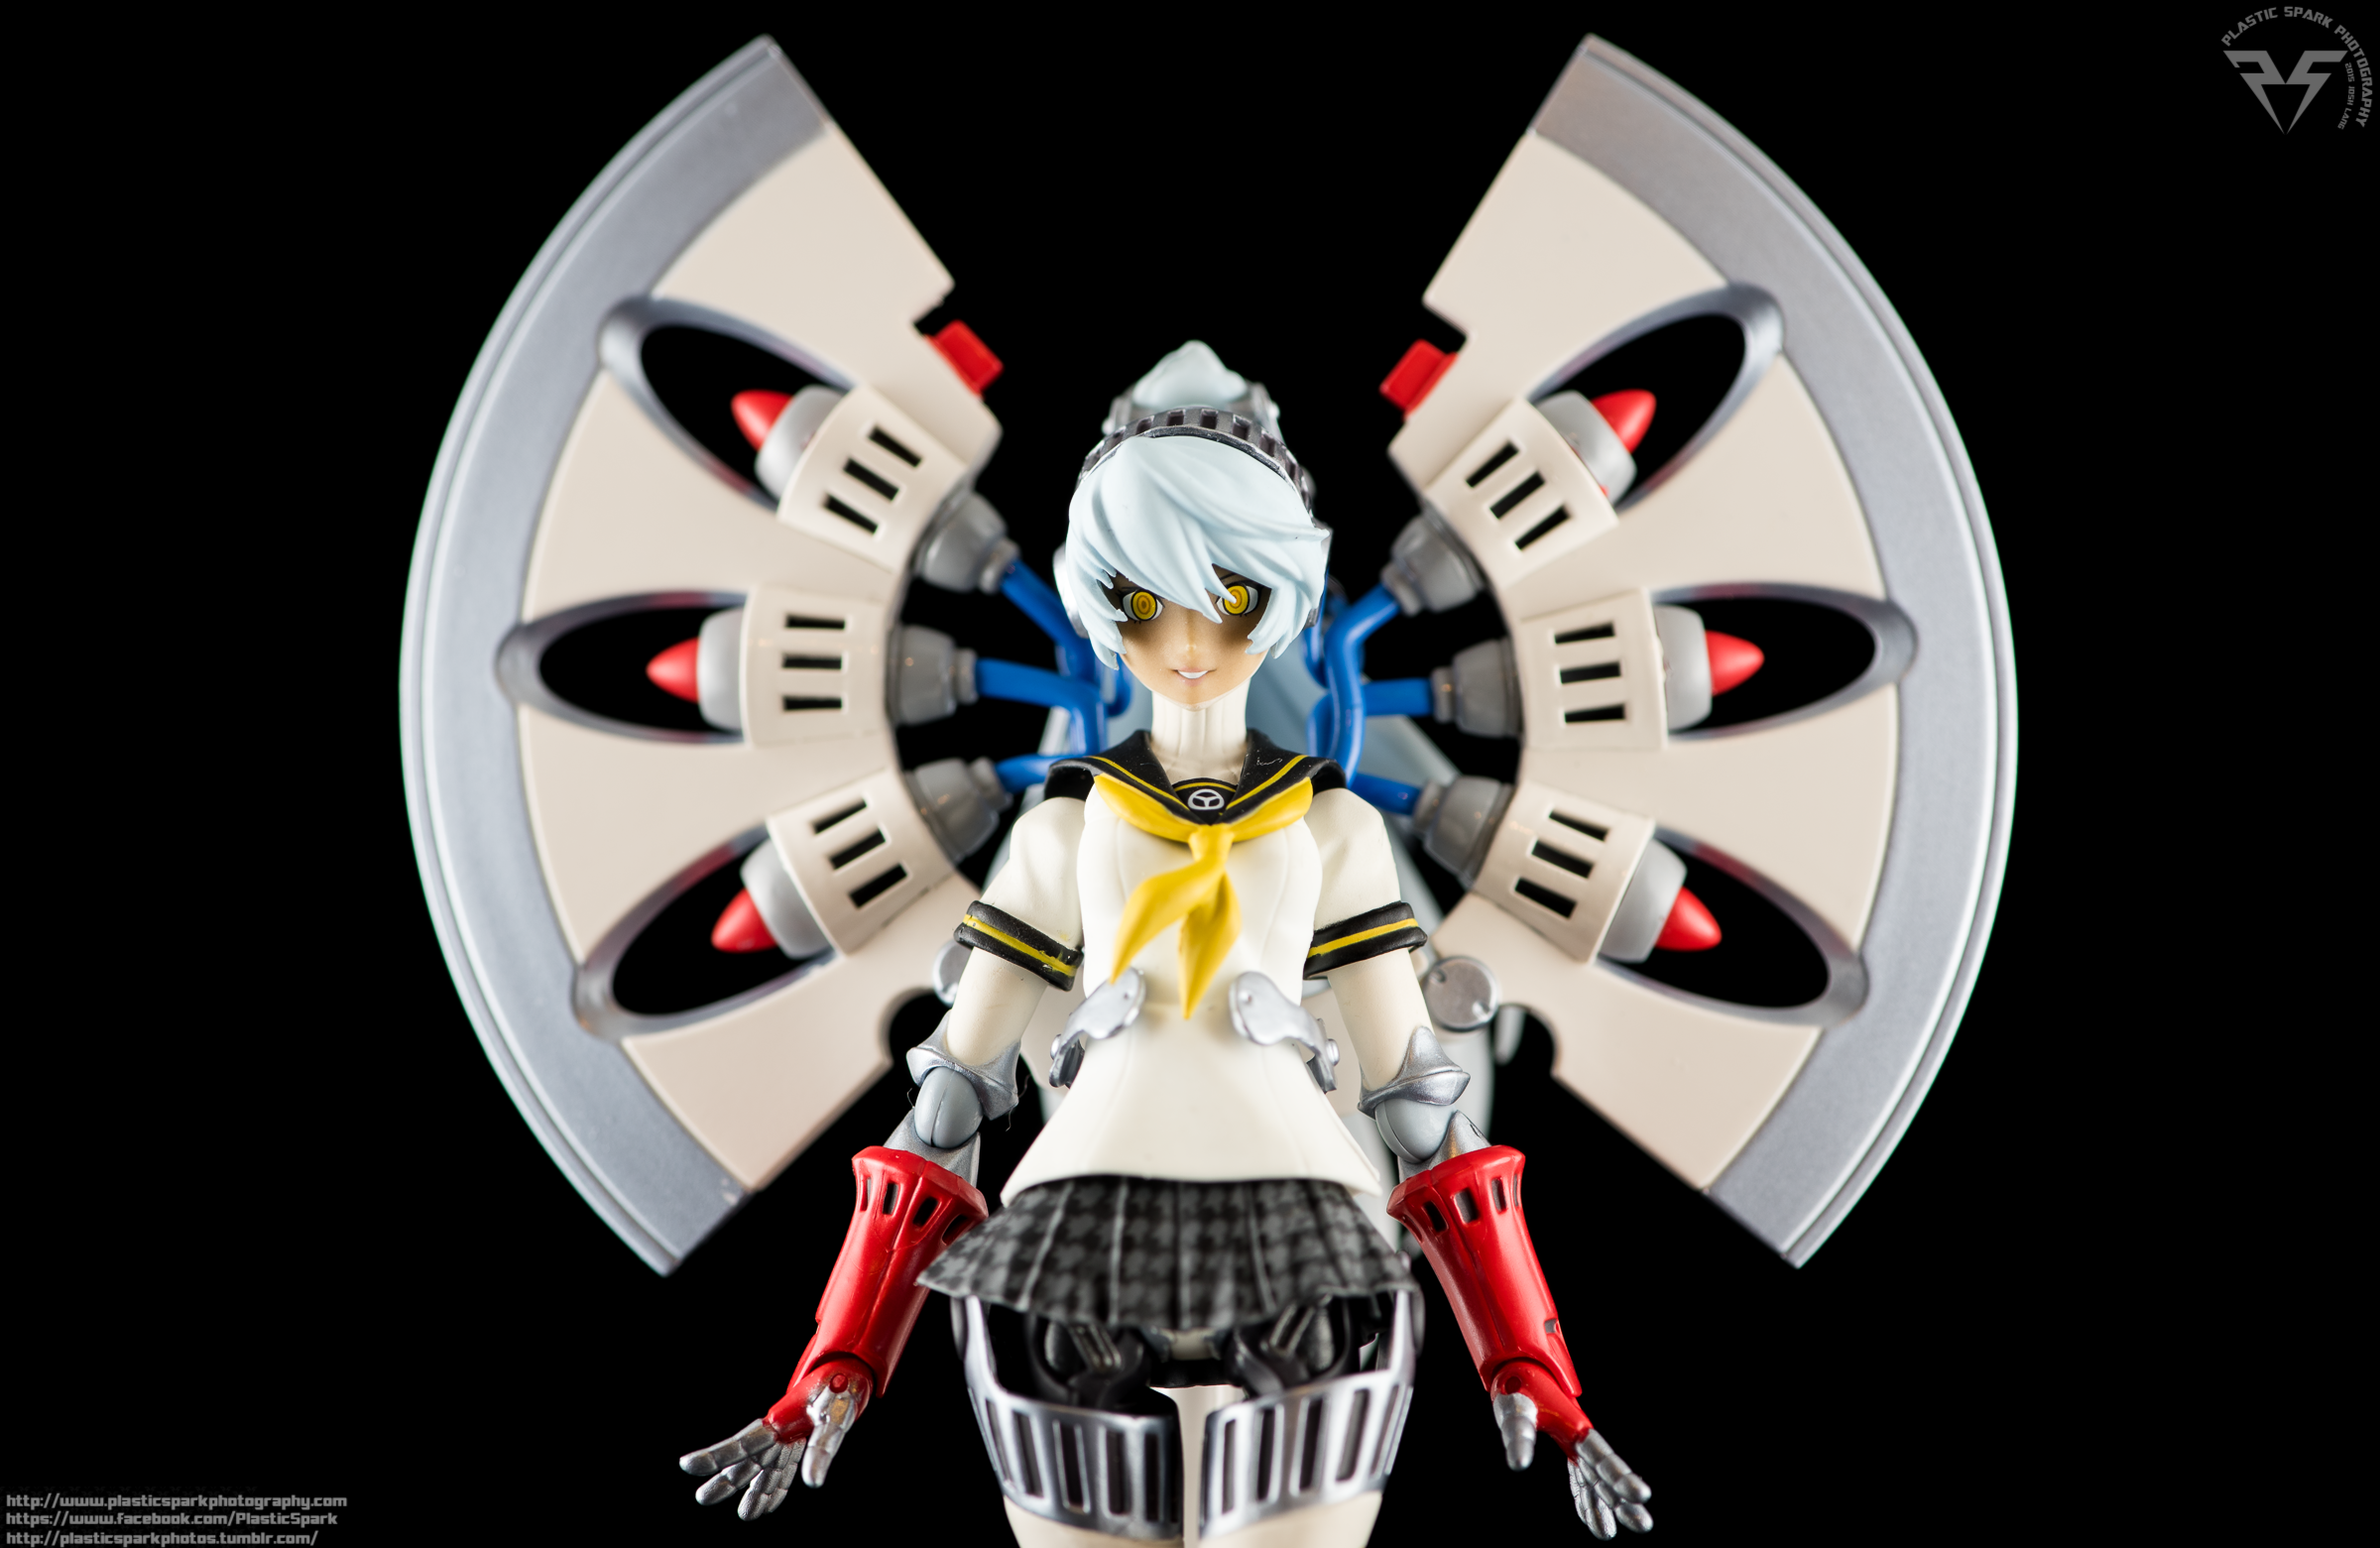 Figma-Labrys-(16-of-33).png